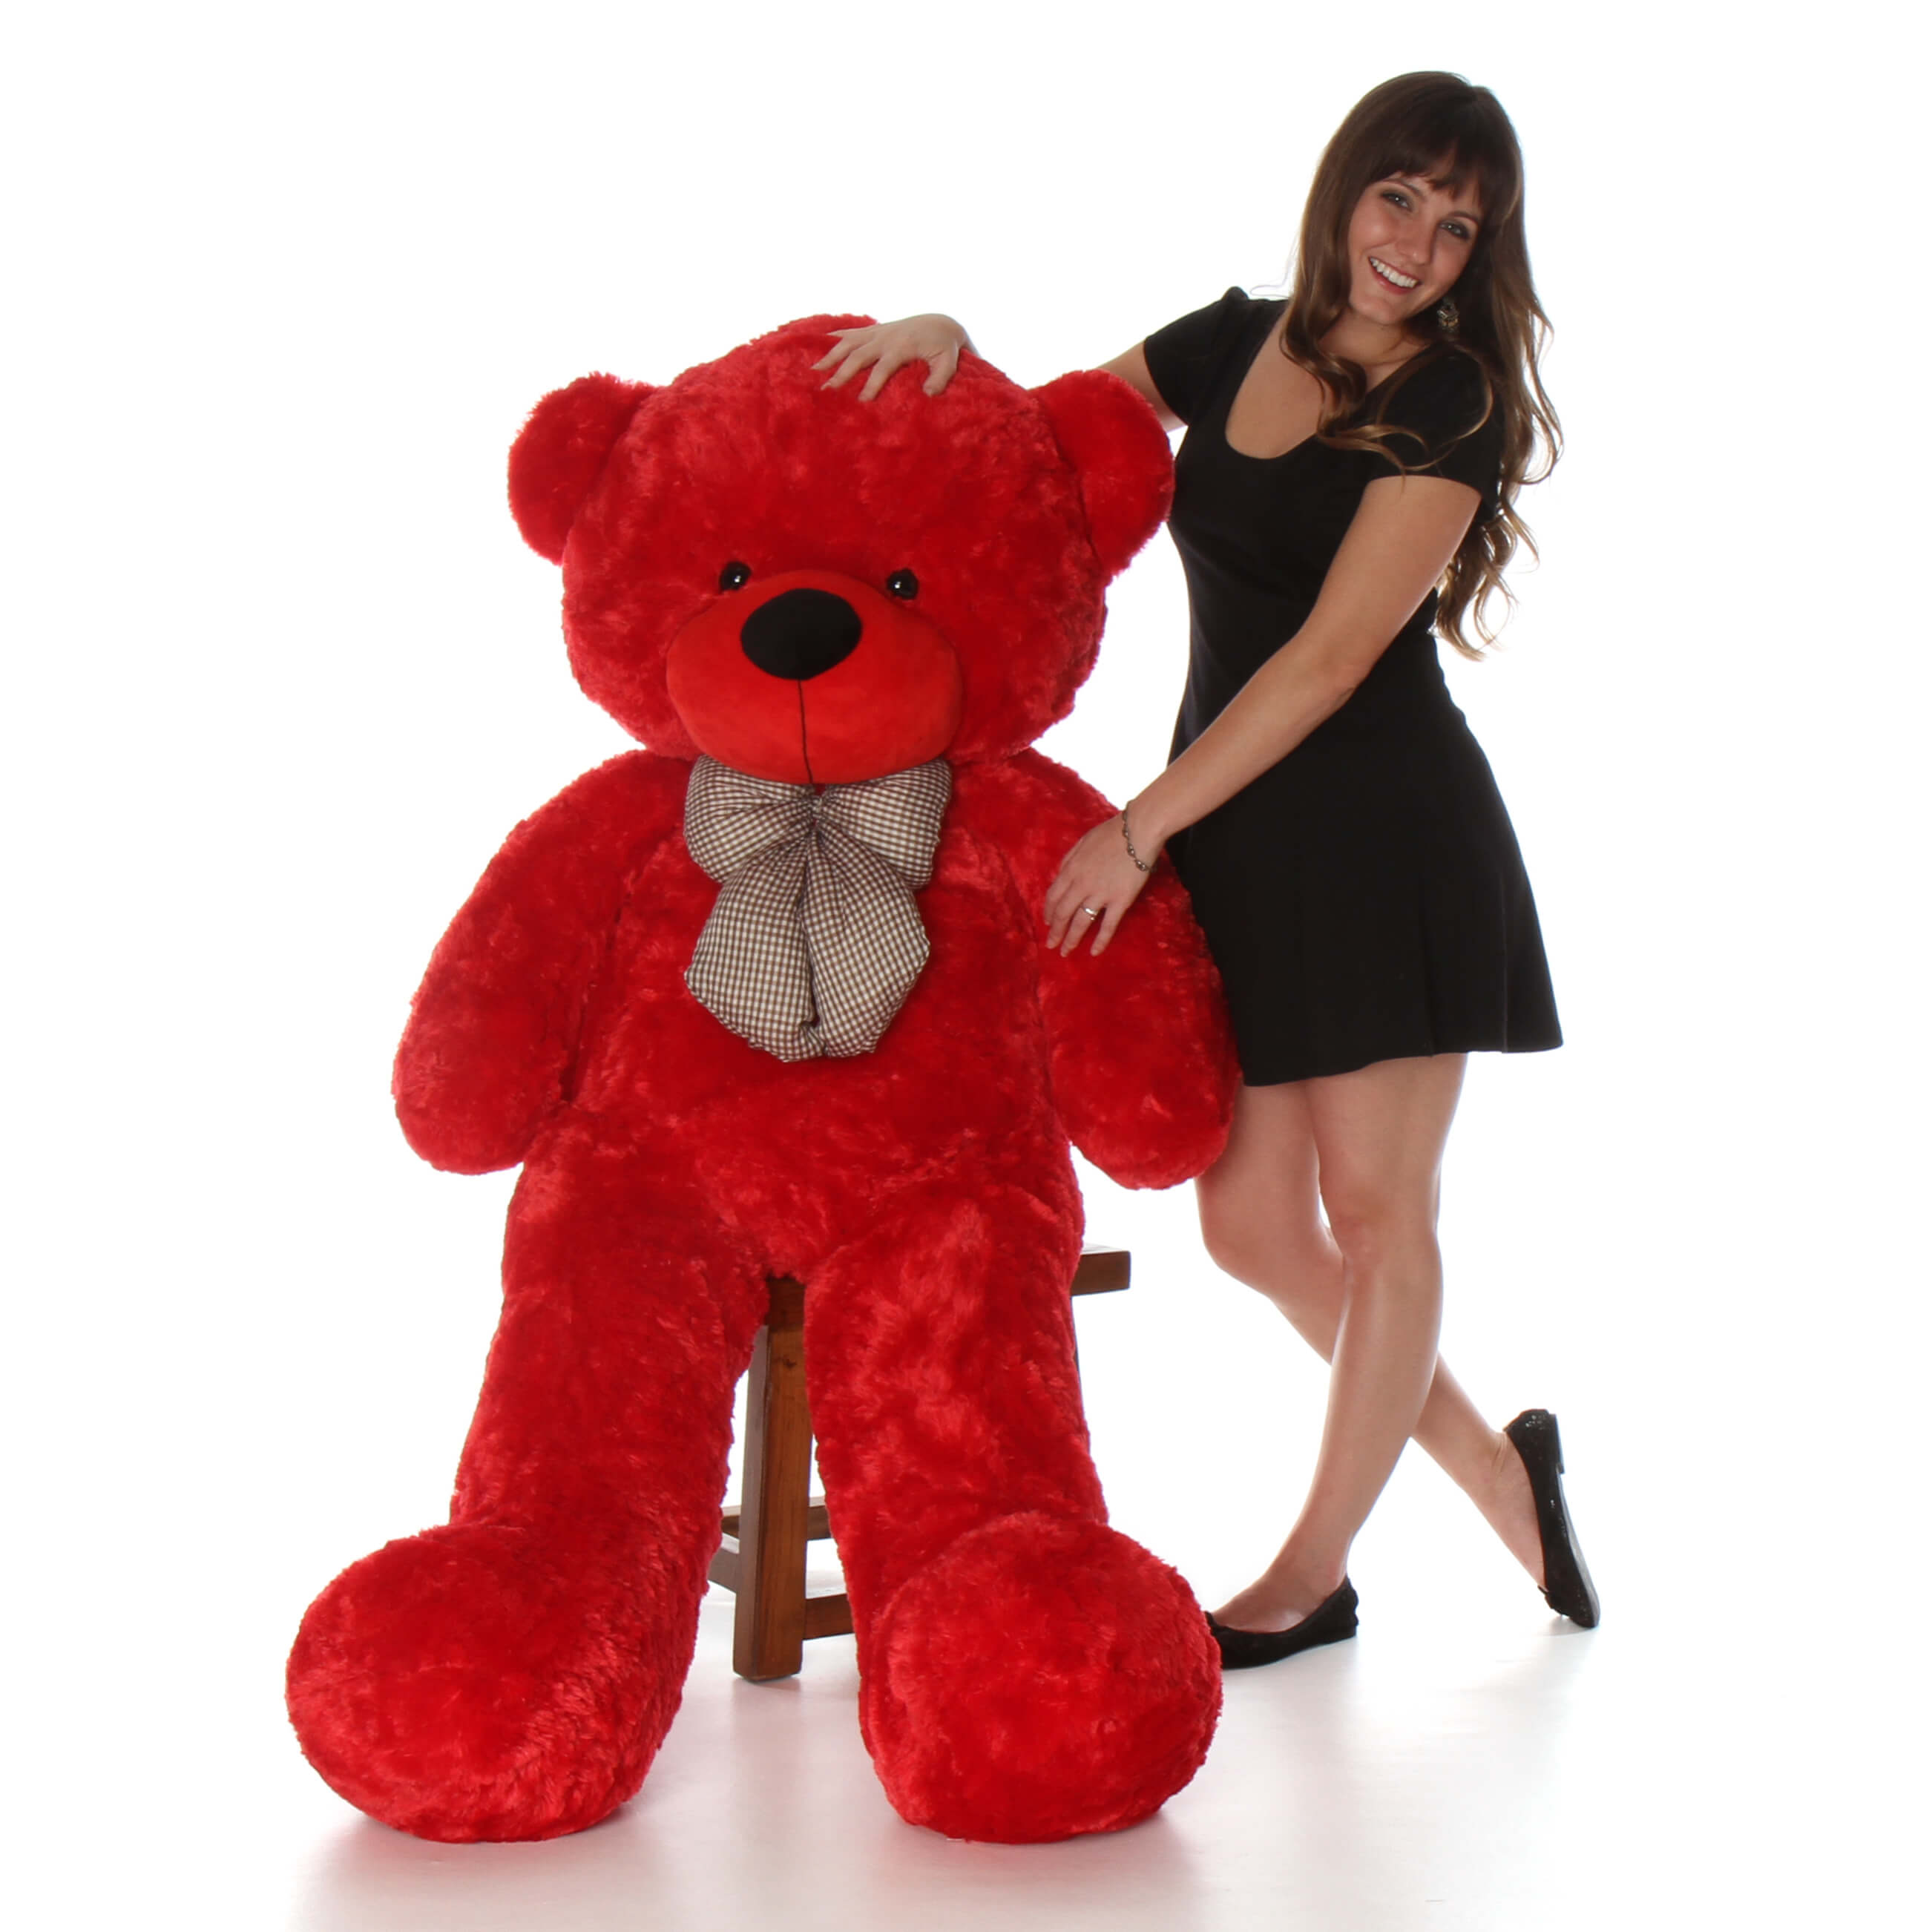 huge-life-size-60in-red-teddy-bear-bitsy-cuddles-soft-1.jpg